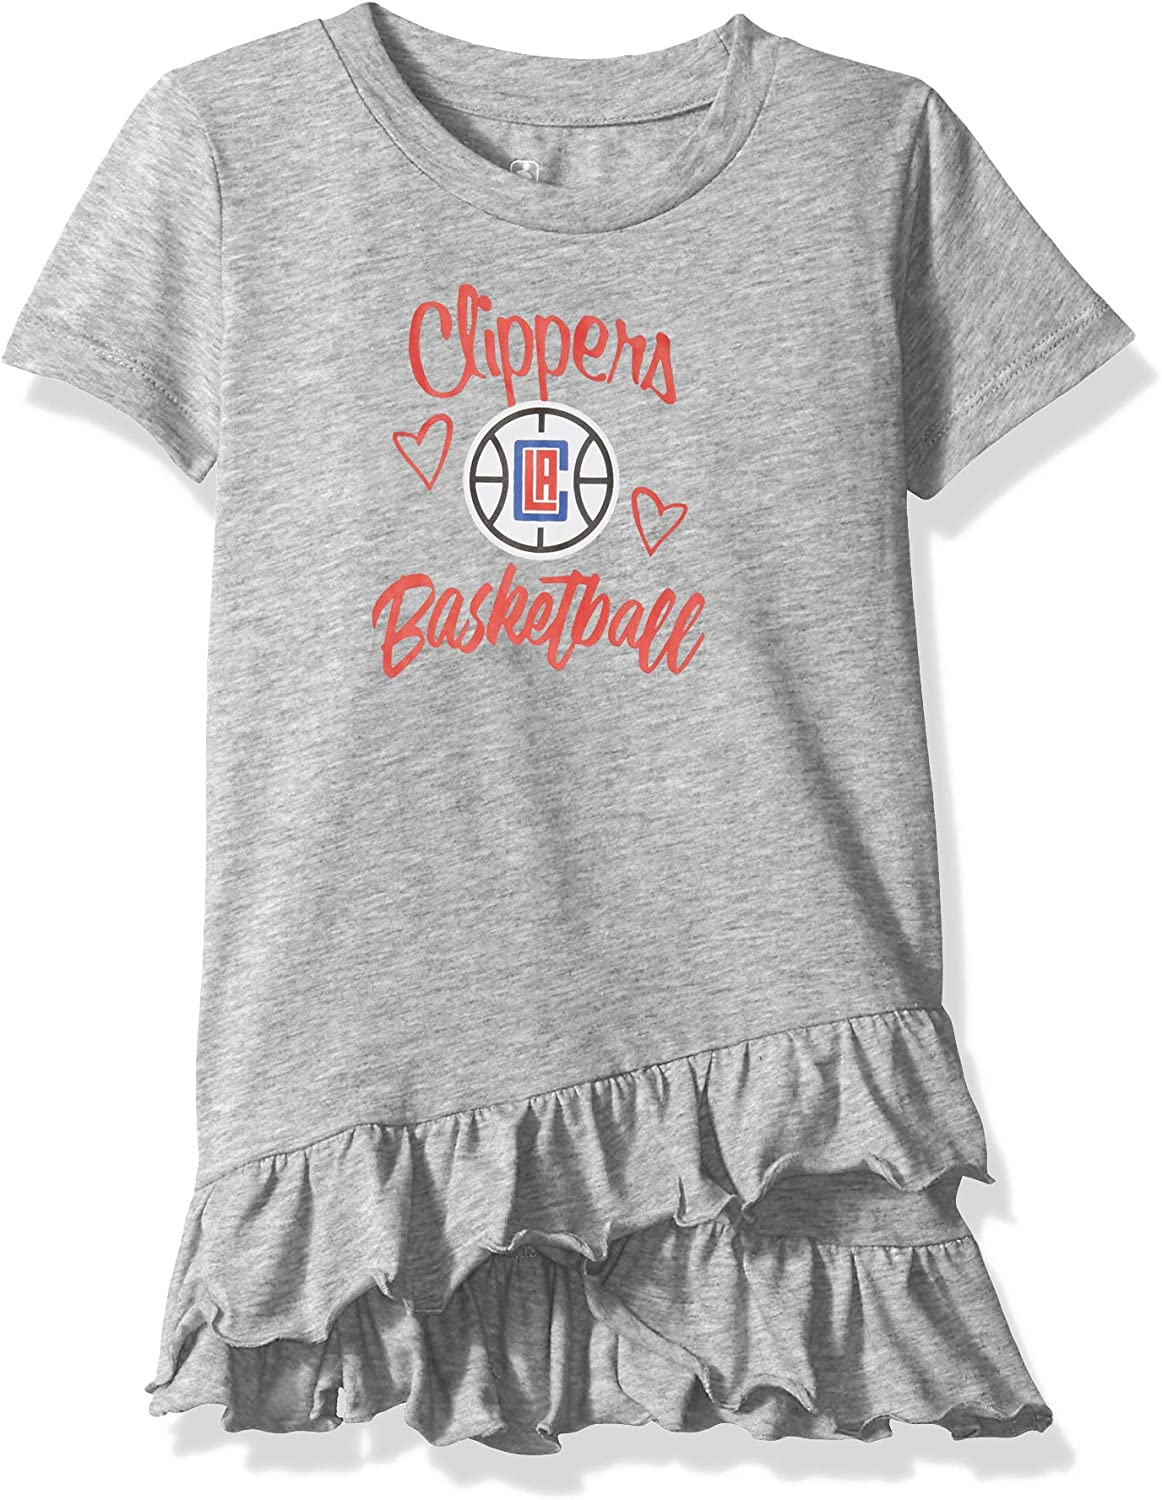 NBA by Outerstuff NBA Newborn /& Infant Claim to Fame Ruffle Dress